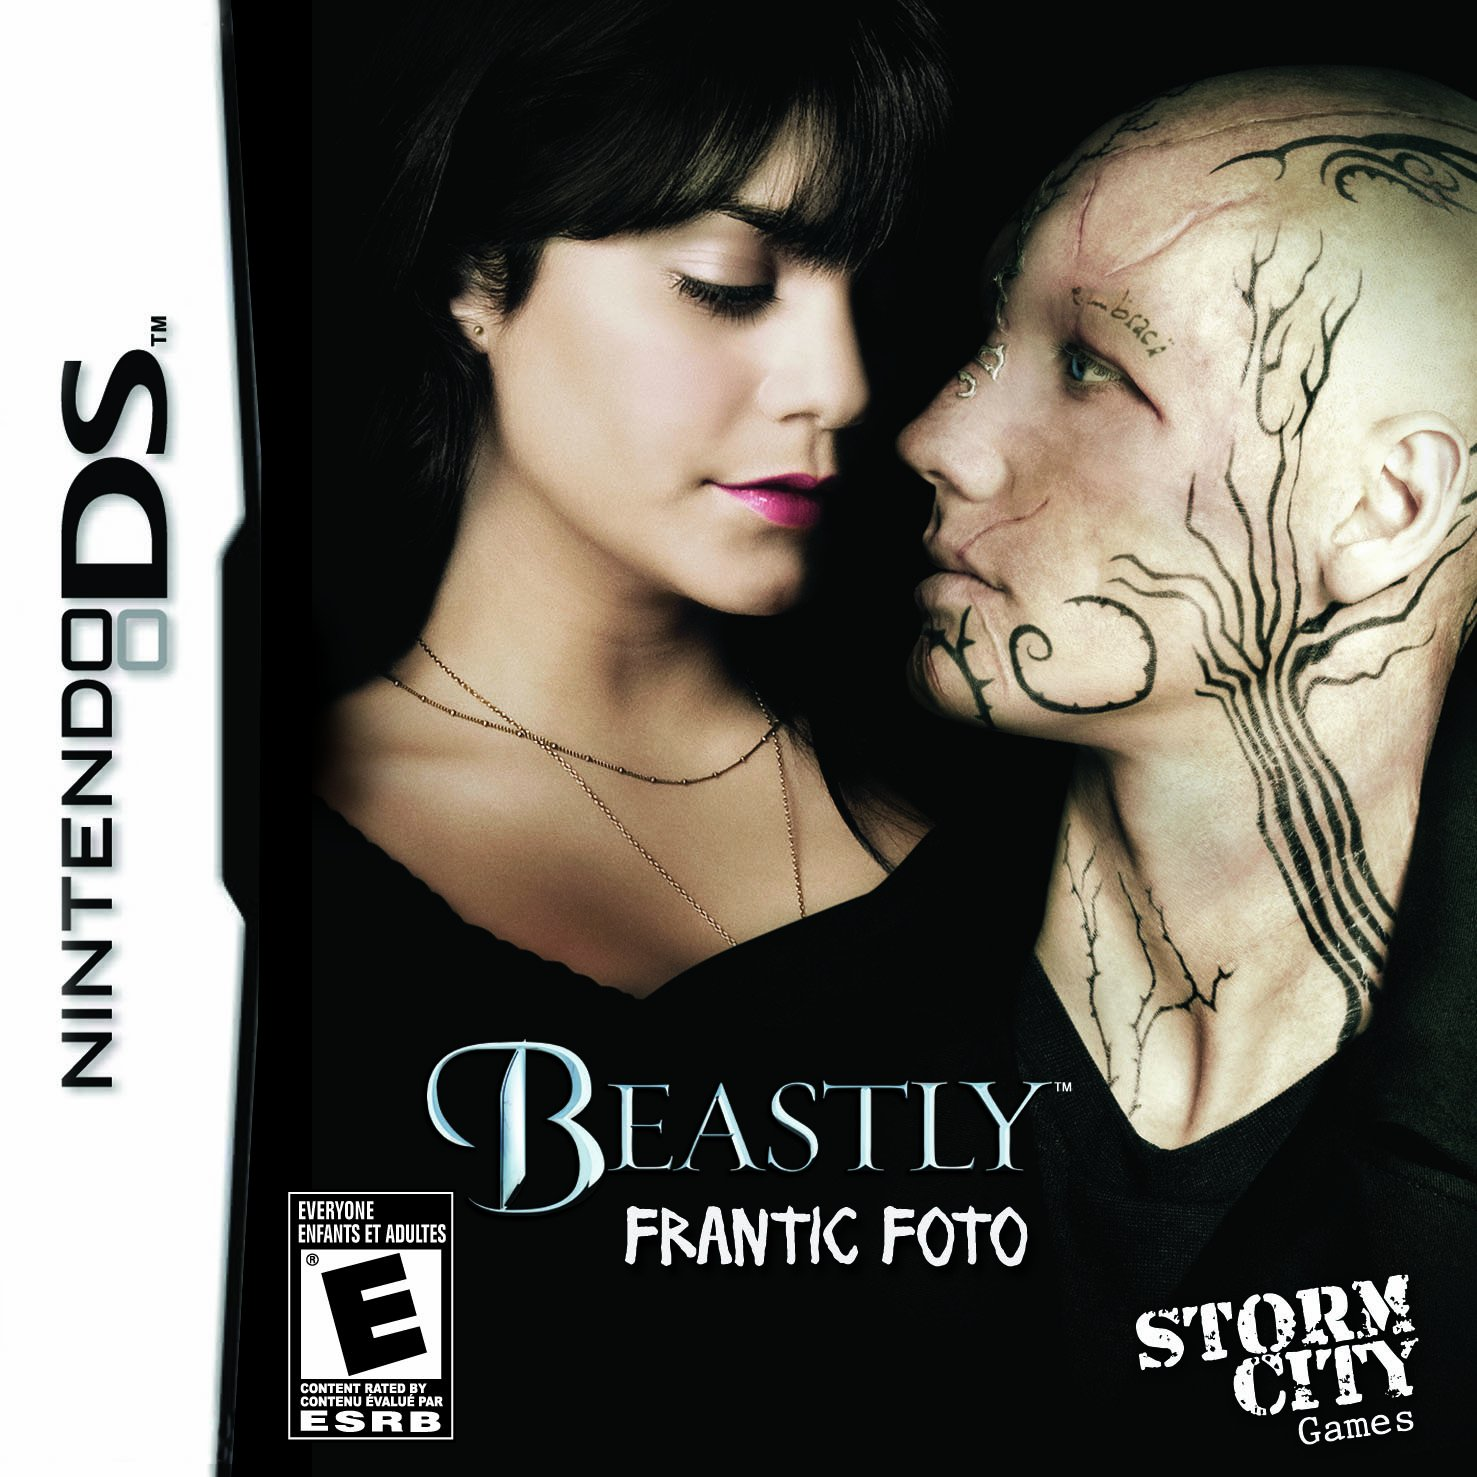 Beastly Frantic Foto - Nintendo DS